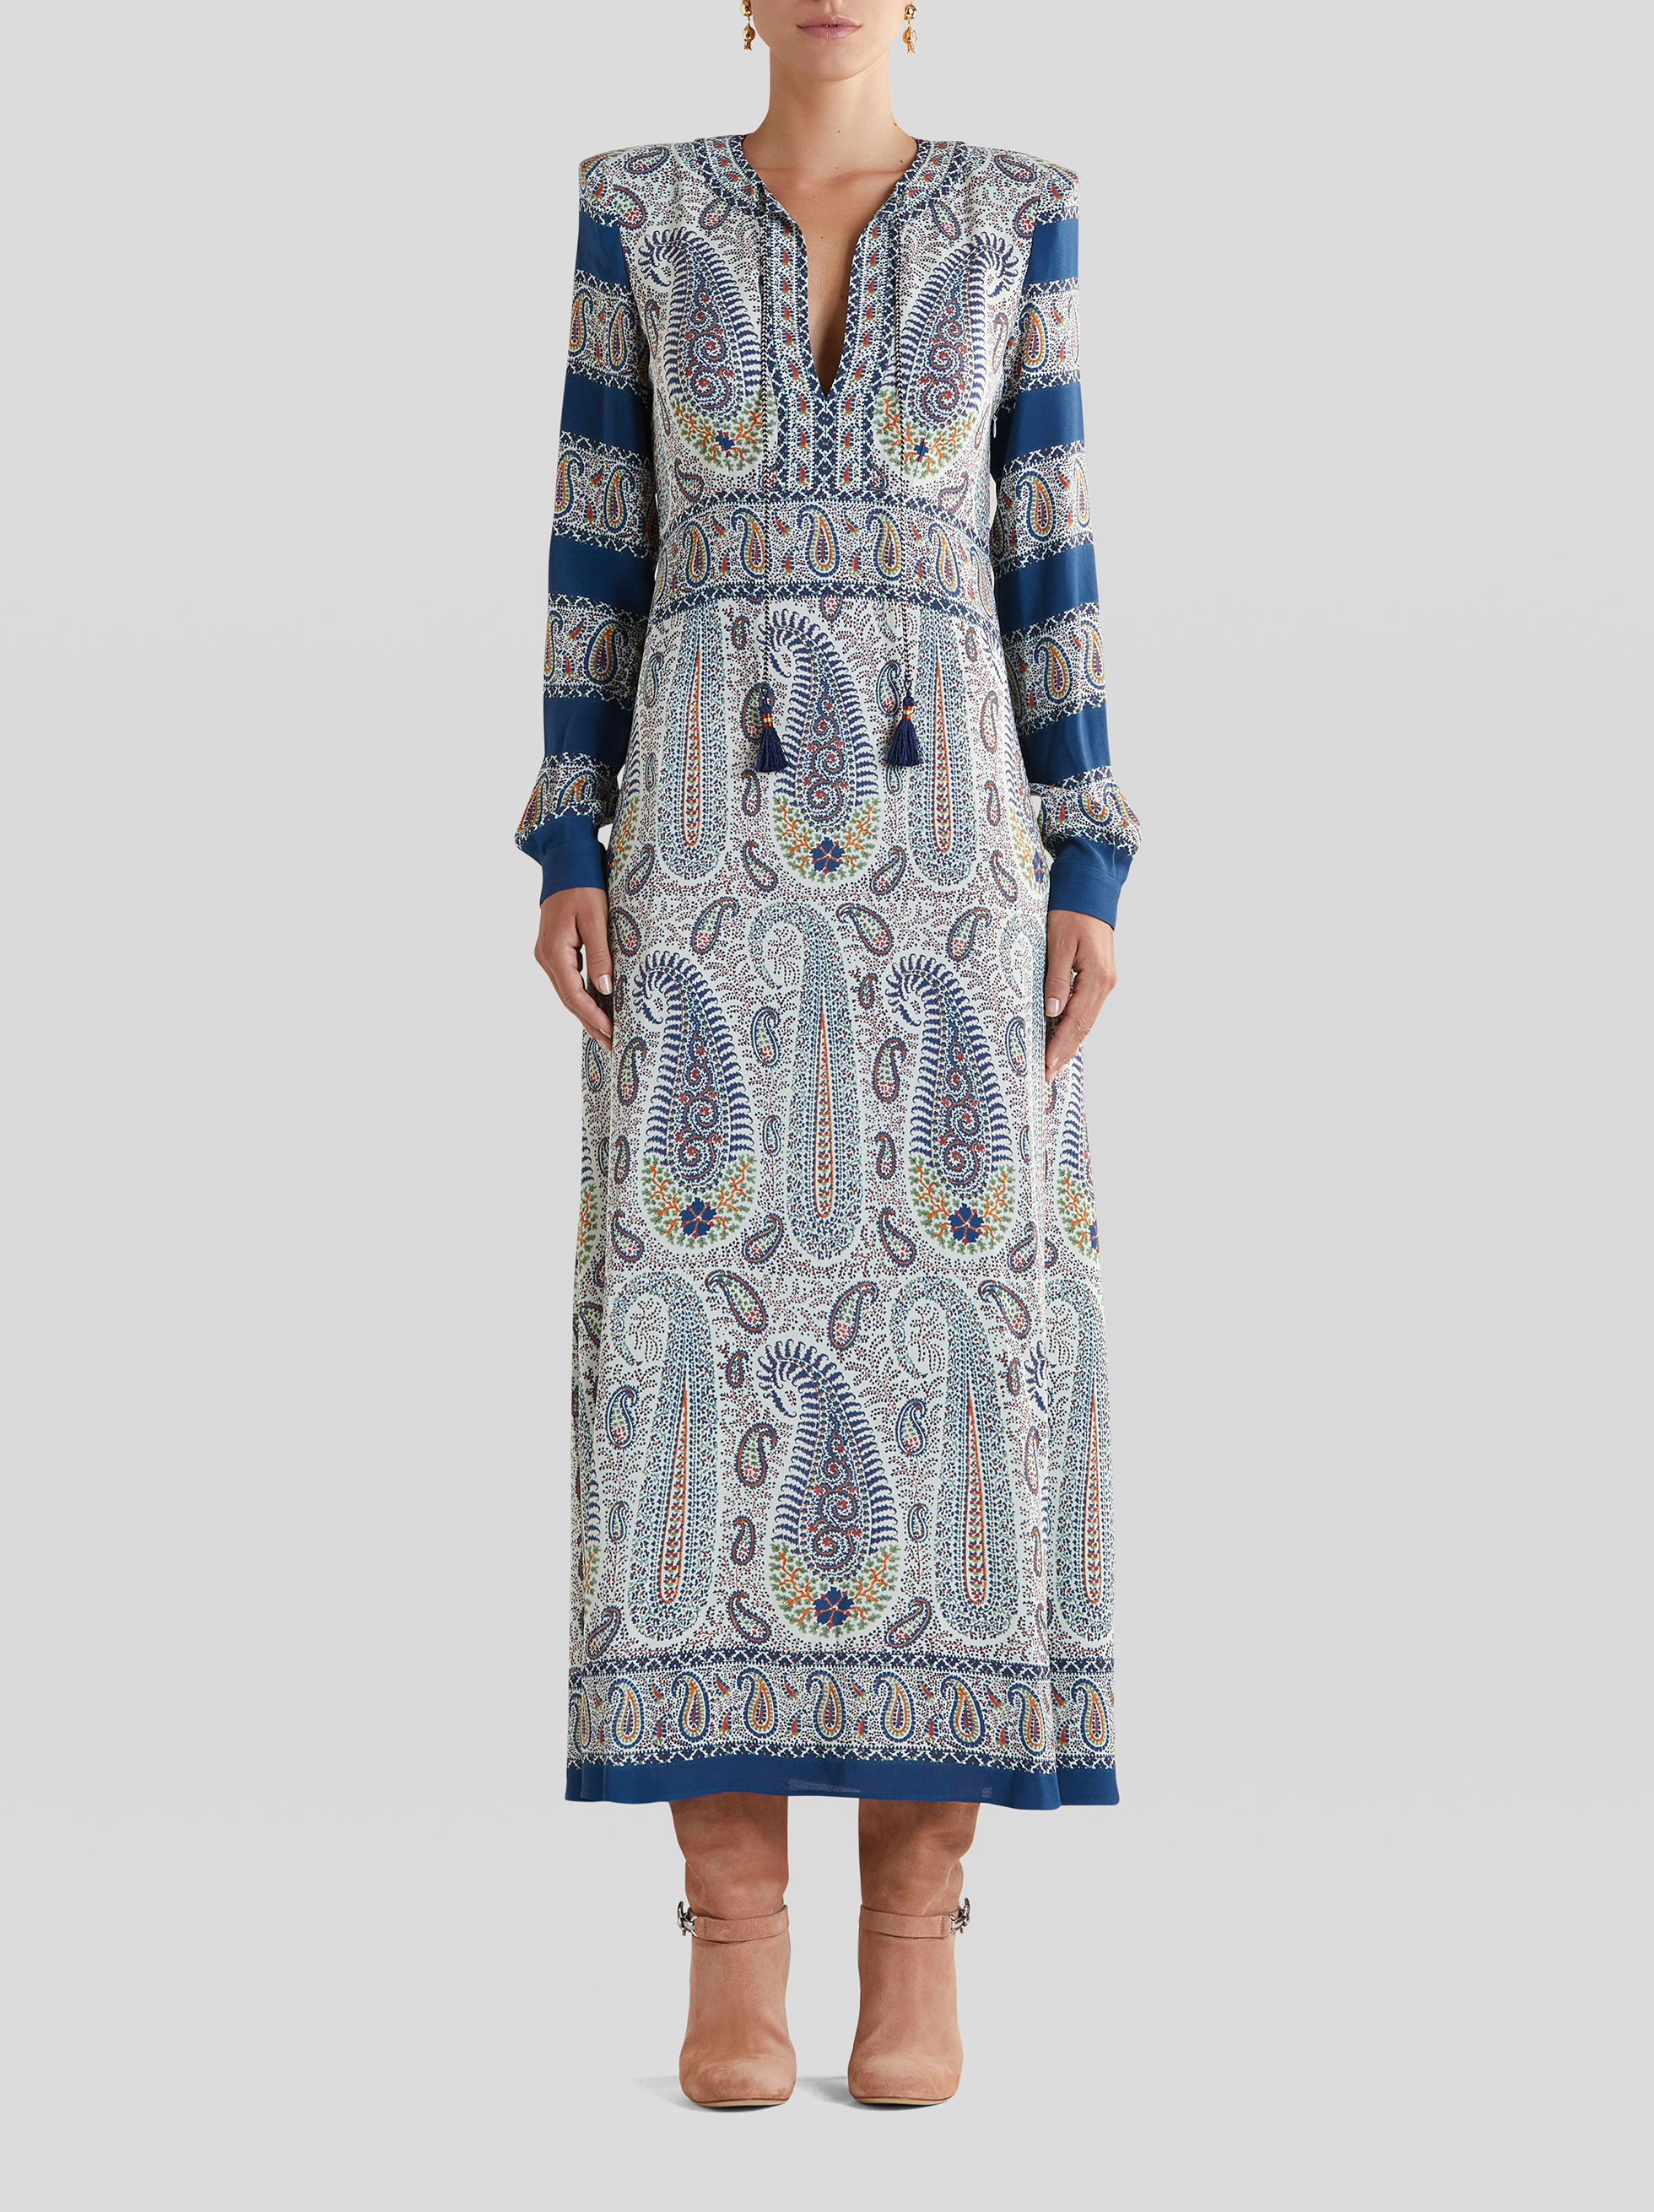 MOSAIC PAISLEY PRINT DRESS